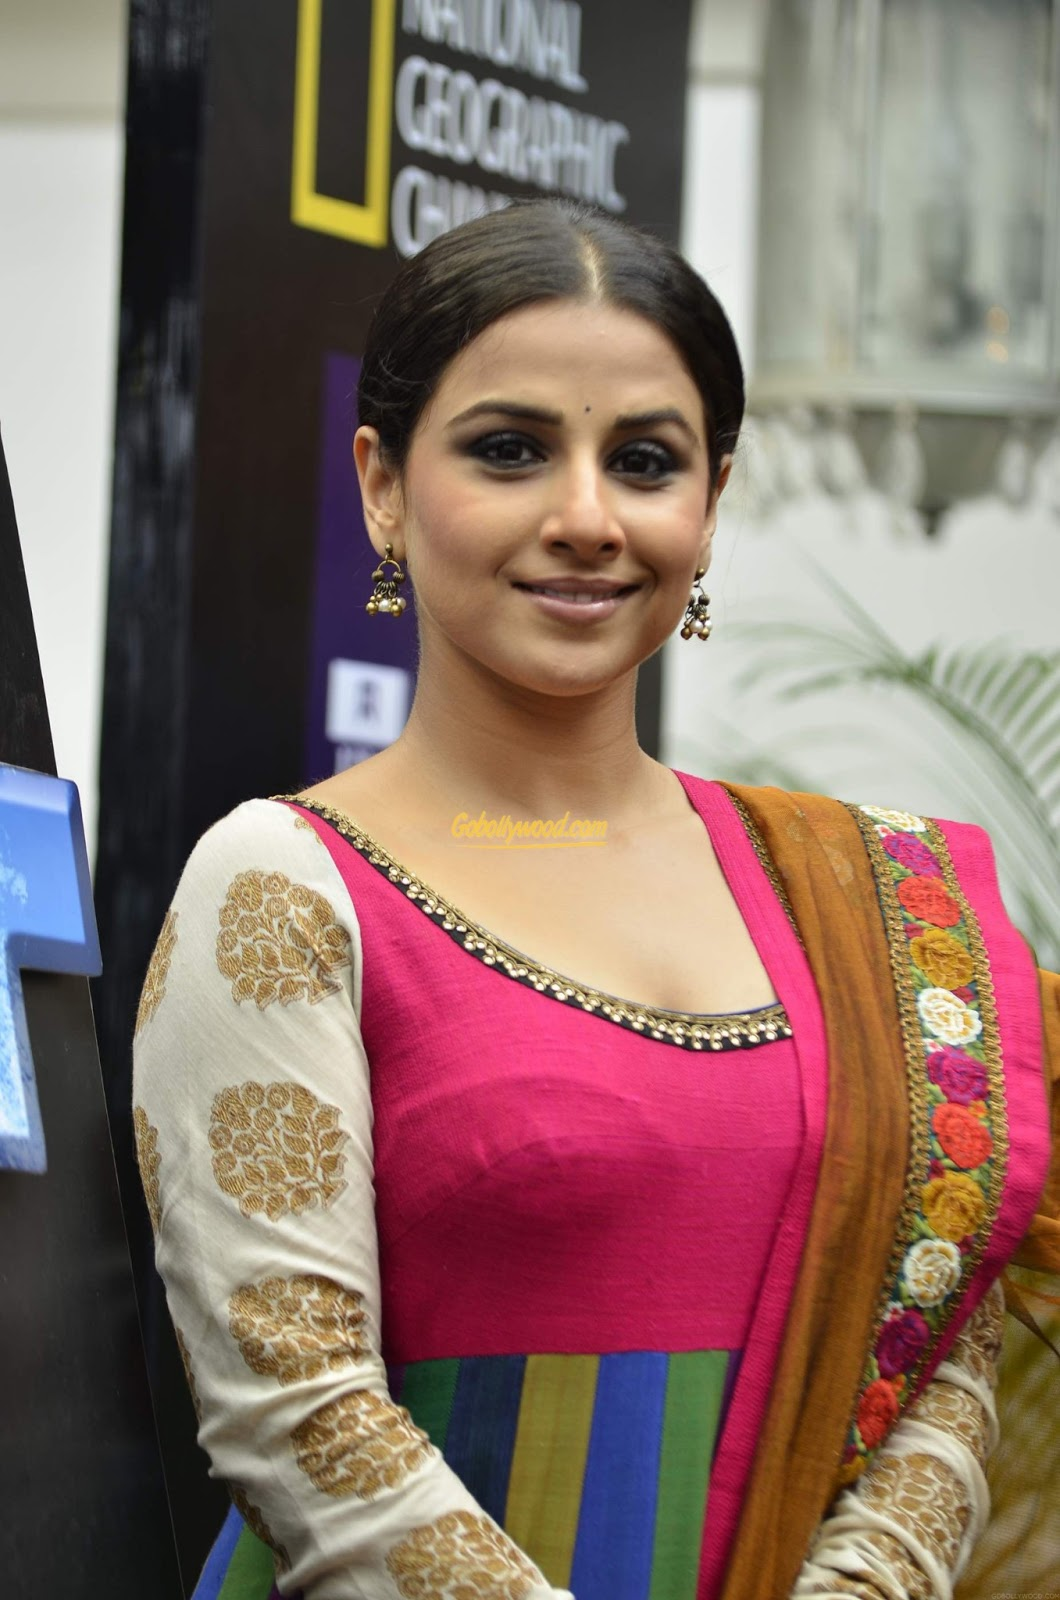 from Lincoln vidya balan open pusy image